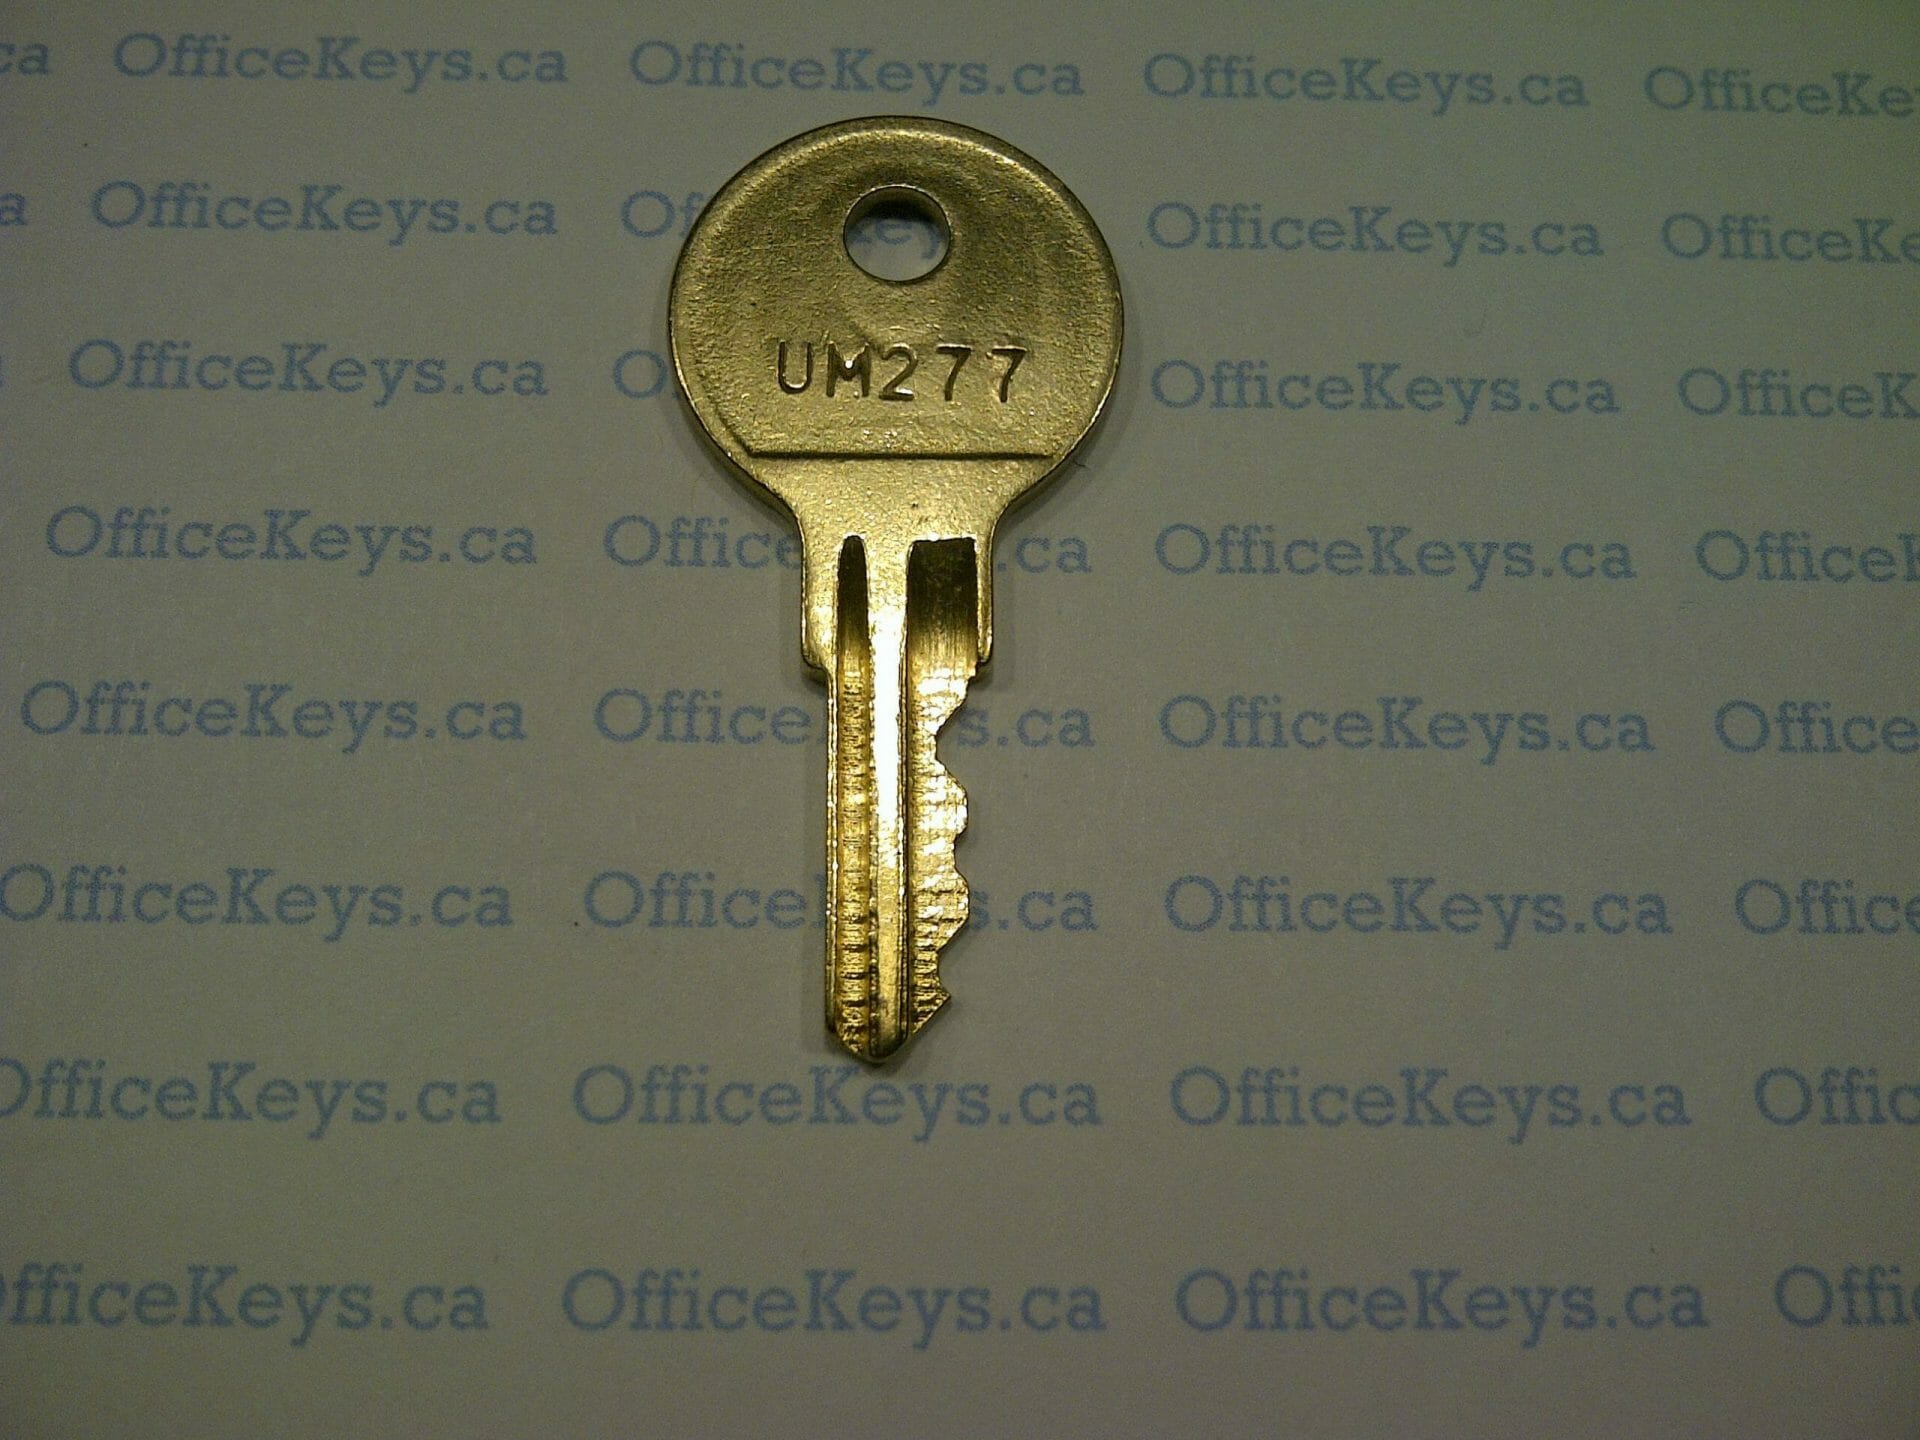 um284 Two Replacement Keys for Herman Miller File Cabinet Office Furniture Cut to Lock//Key Numbers from UM227 to UM350 pre Cut to Code by keys22